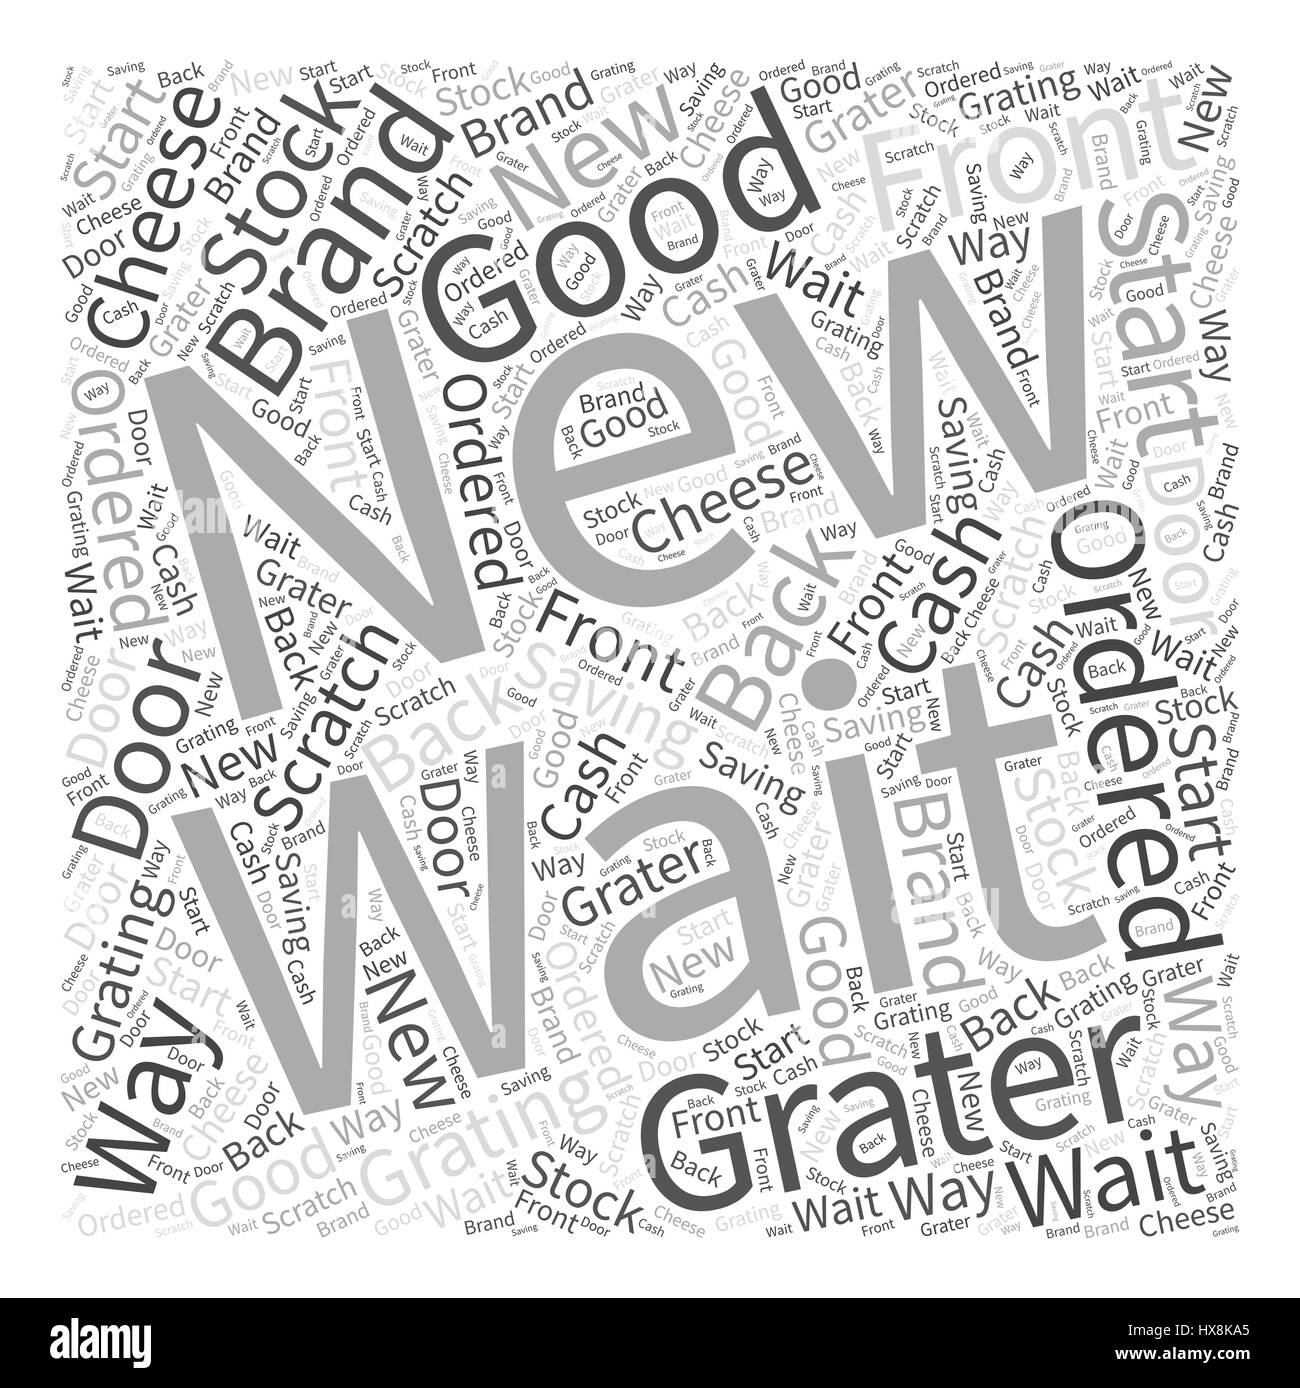 cheese grater Word Cloud Concept - Stock Vector